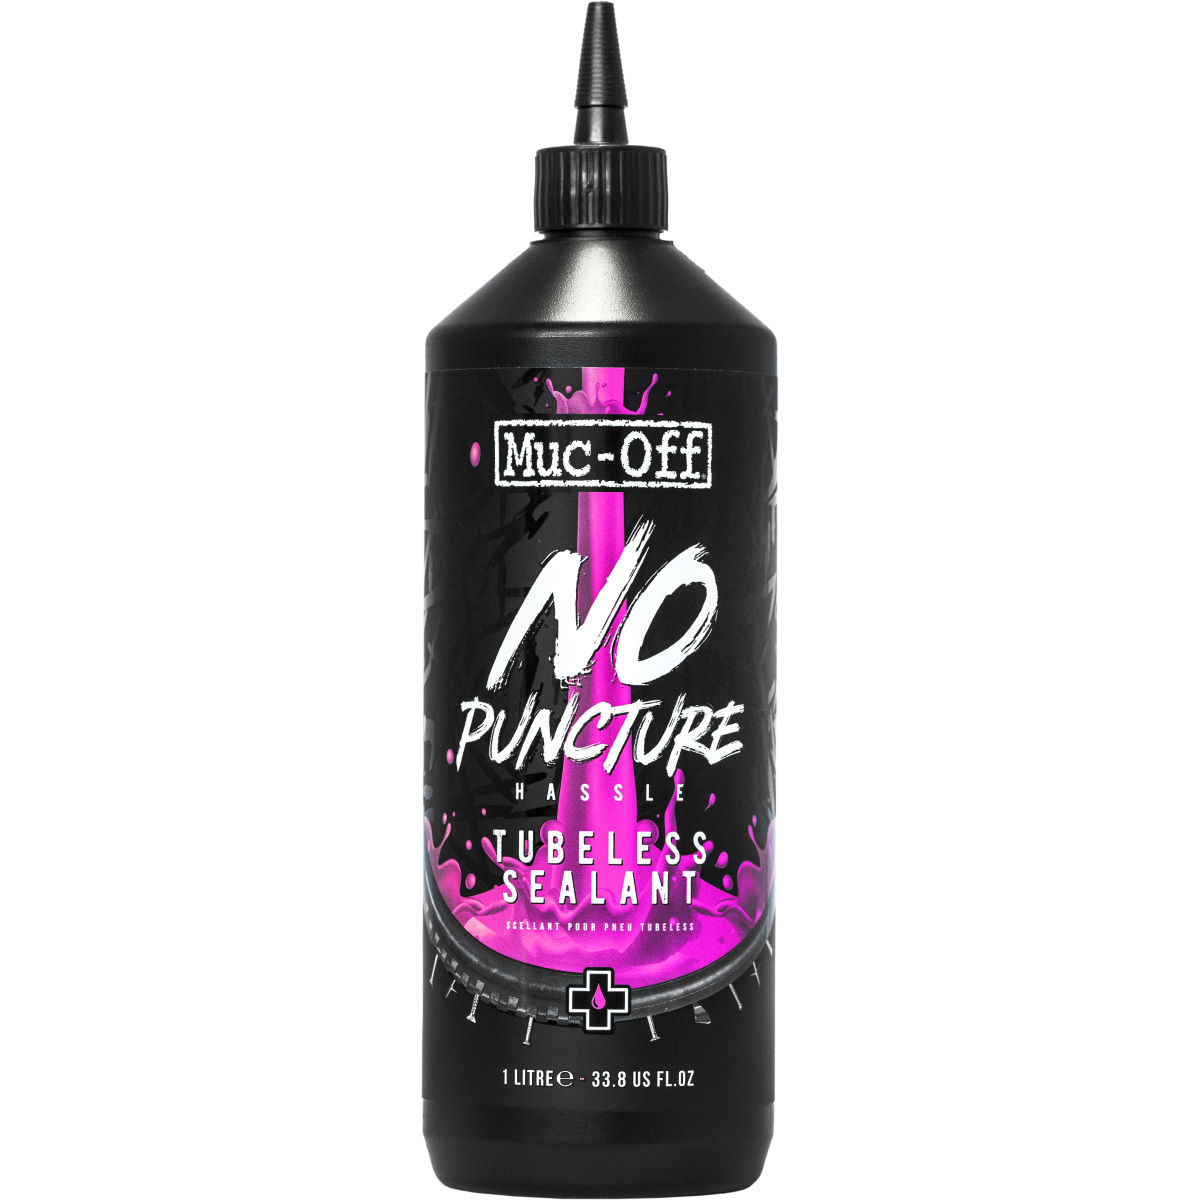 Muc-Off Muc-Off No Puncture Hassle 1L   Puncture Repair